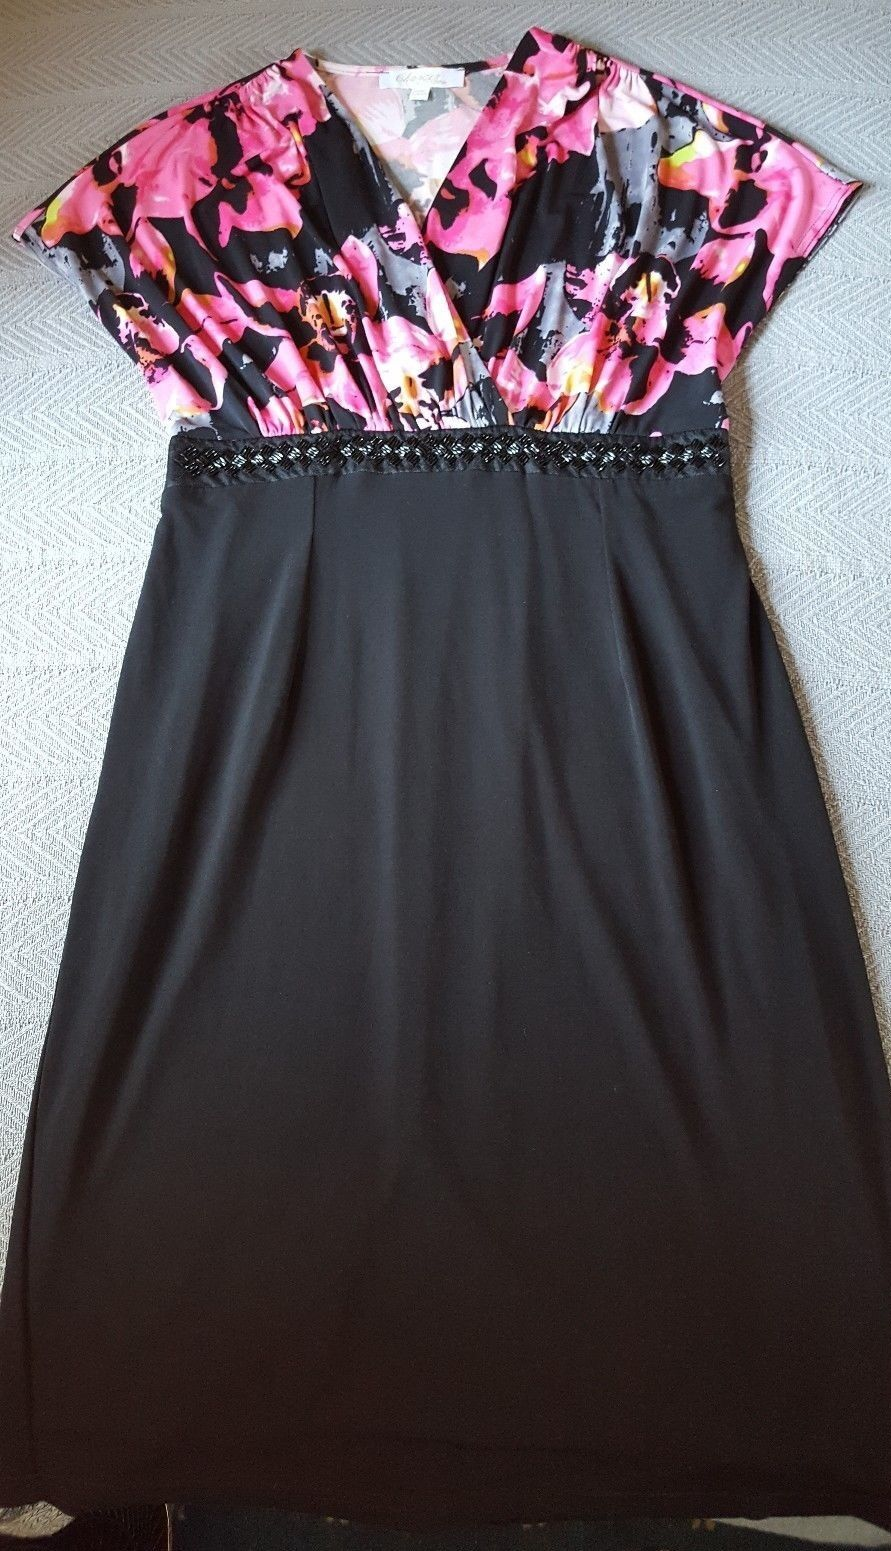 Changes by Together damen knit dress schwarz floral v-neck beaded 10 12 M L